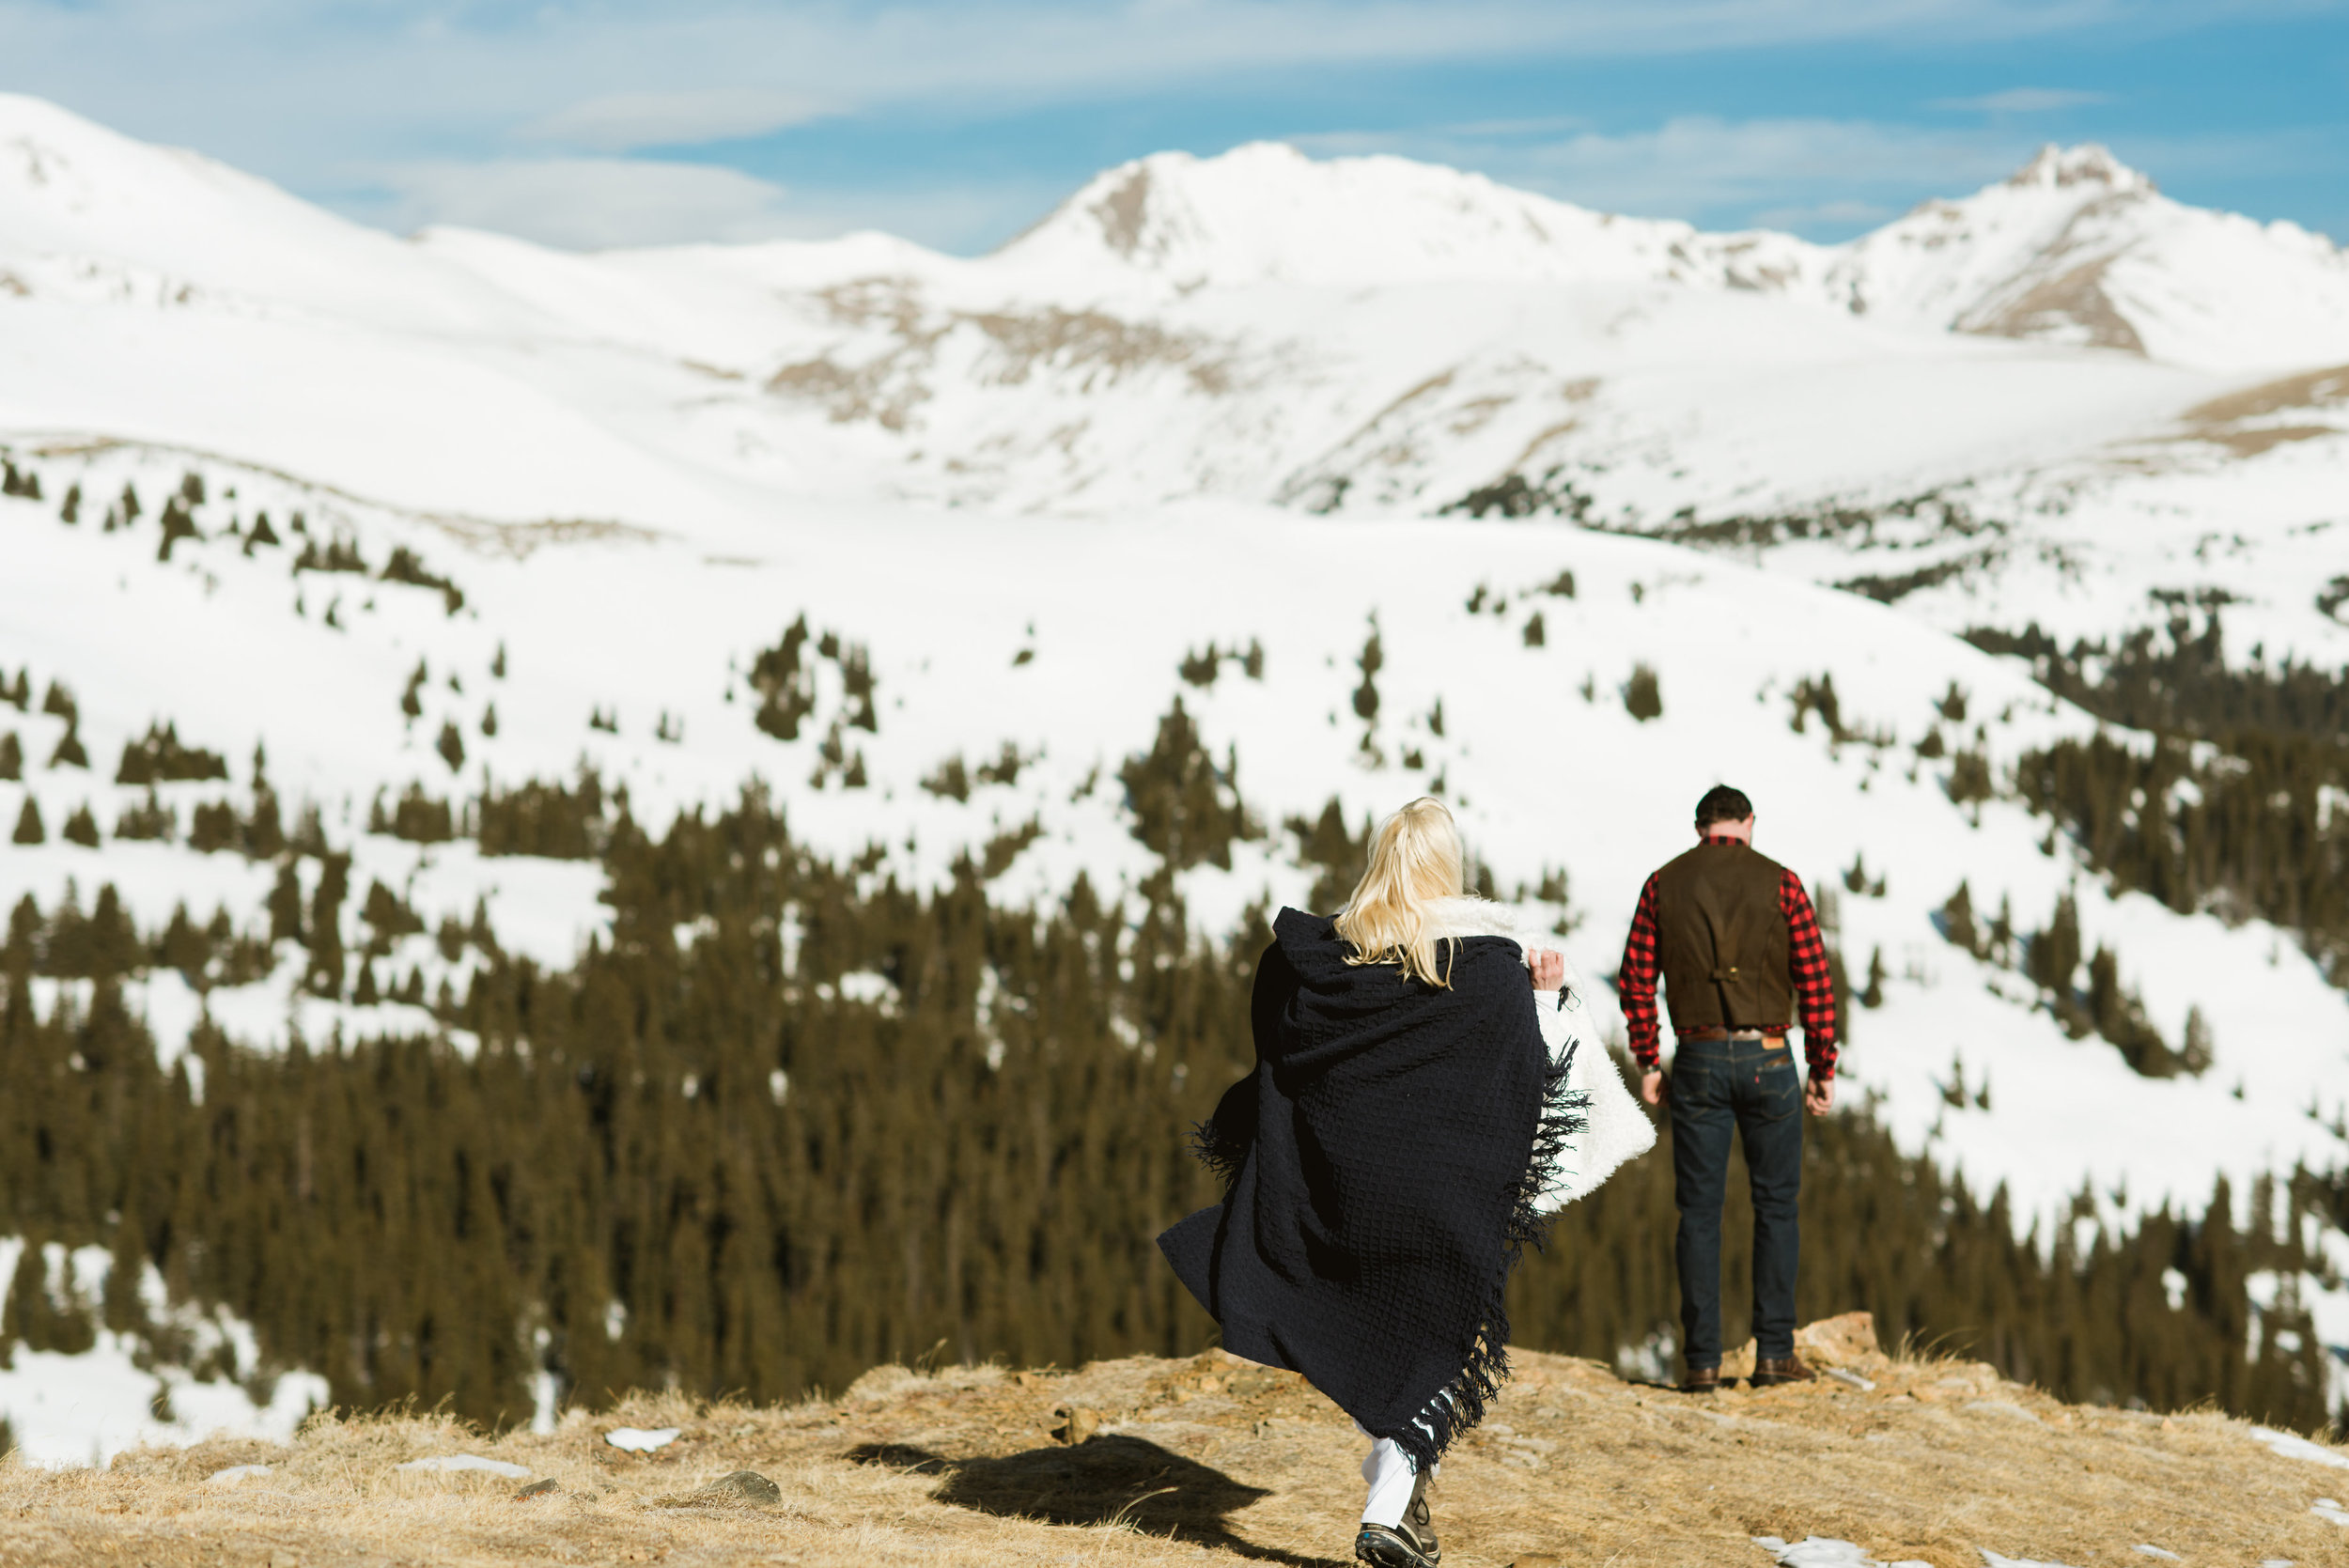 Britta & Colin cozied up on the mountainside where they tied the knot!| Adventurous mountain elopement photography by Maddie Mae